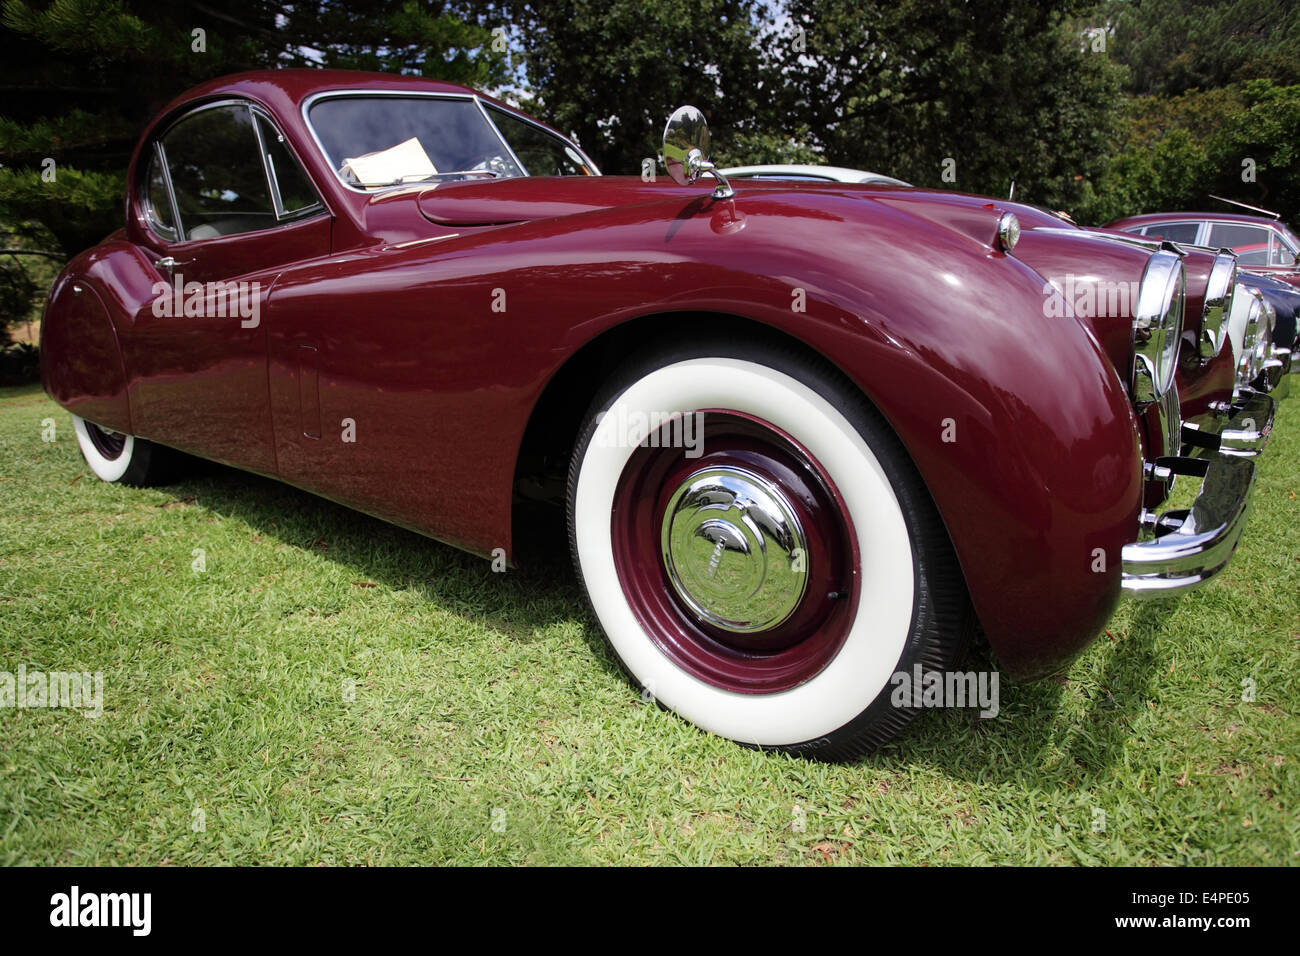 stock photo vintage maroon jaguar xk140 with white wall tires